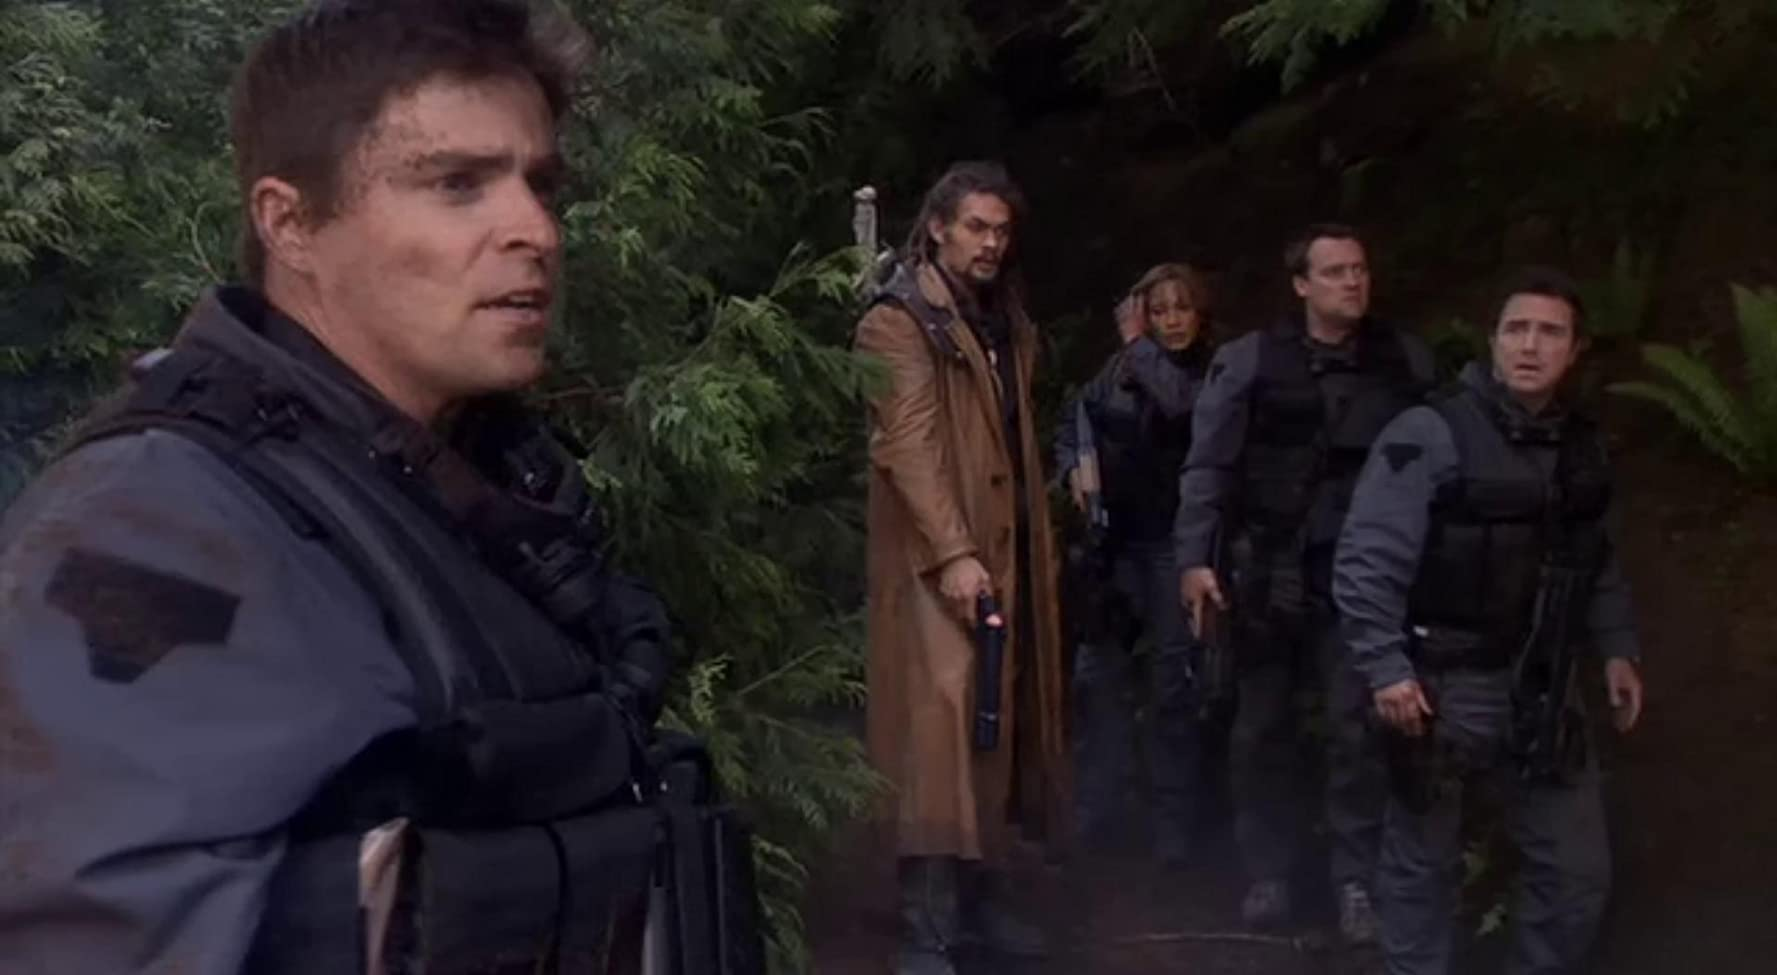 David Hewlett, Rachel Luttrell, Paul McGillion, Jason Momoa, and Kavan Smith in Stargate: Atlantis (2004)